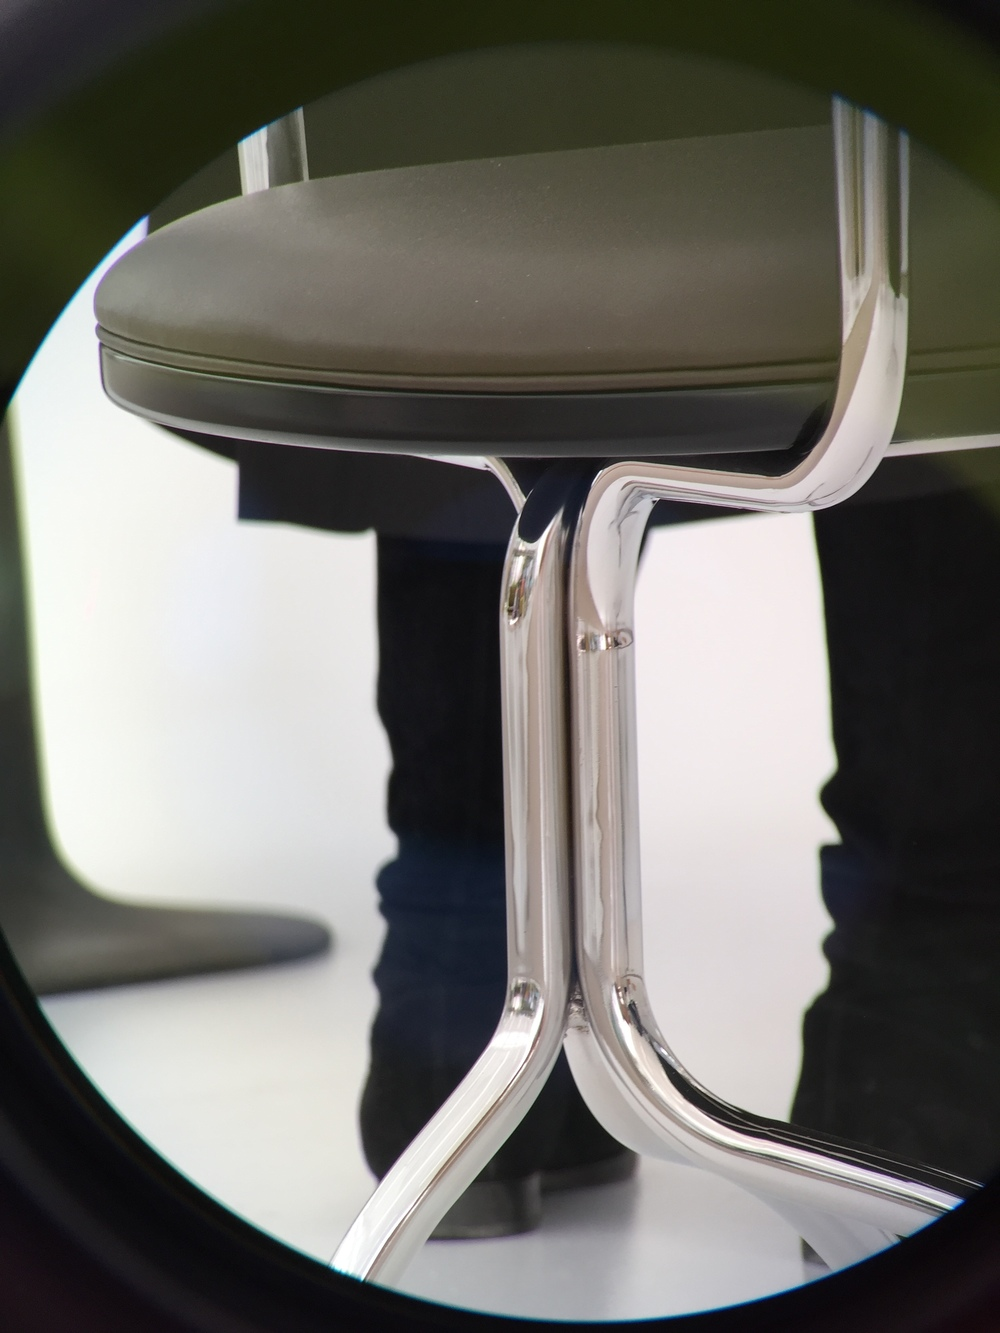 Mergentime Chair by Friedrich Kiesler, Wittmann Digiscoping by Georg Œhler via Swarovski Optik ATX